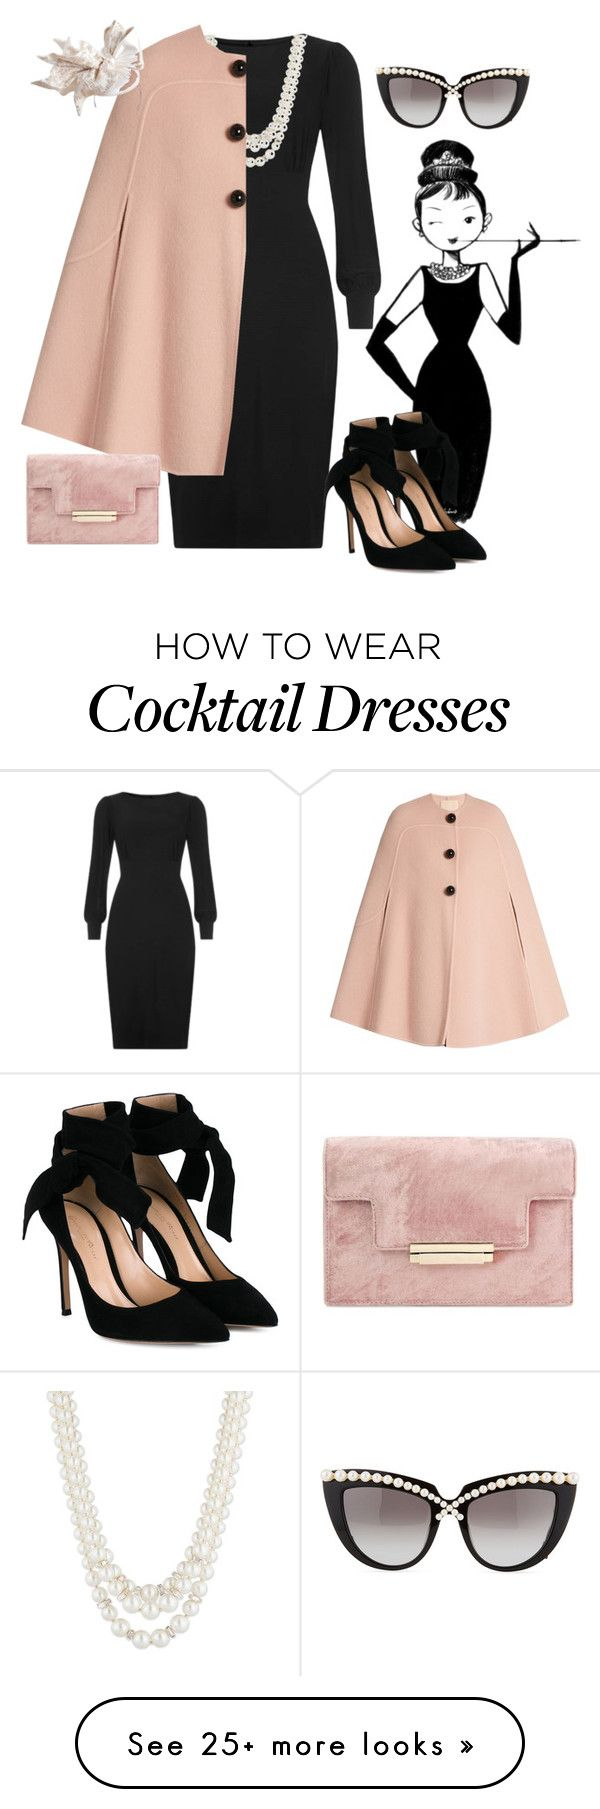 """Tiffany's Chic"" by emma-m-ewert on Polyvore featuring Anne Klein, Roksanda, Gianvito Rossi and Anna-Karin Karlsson"